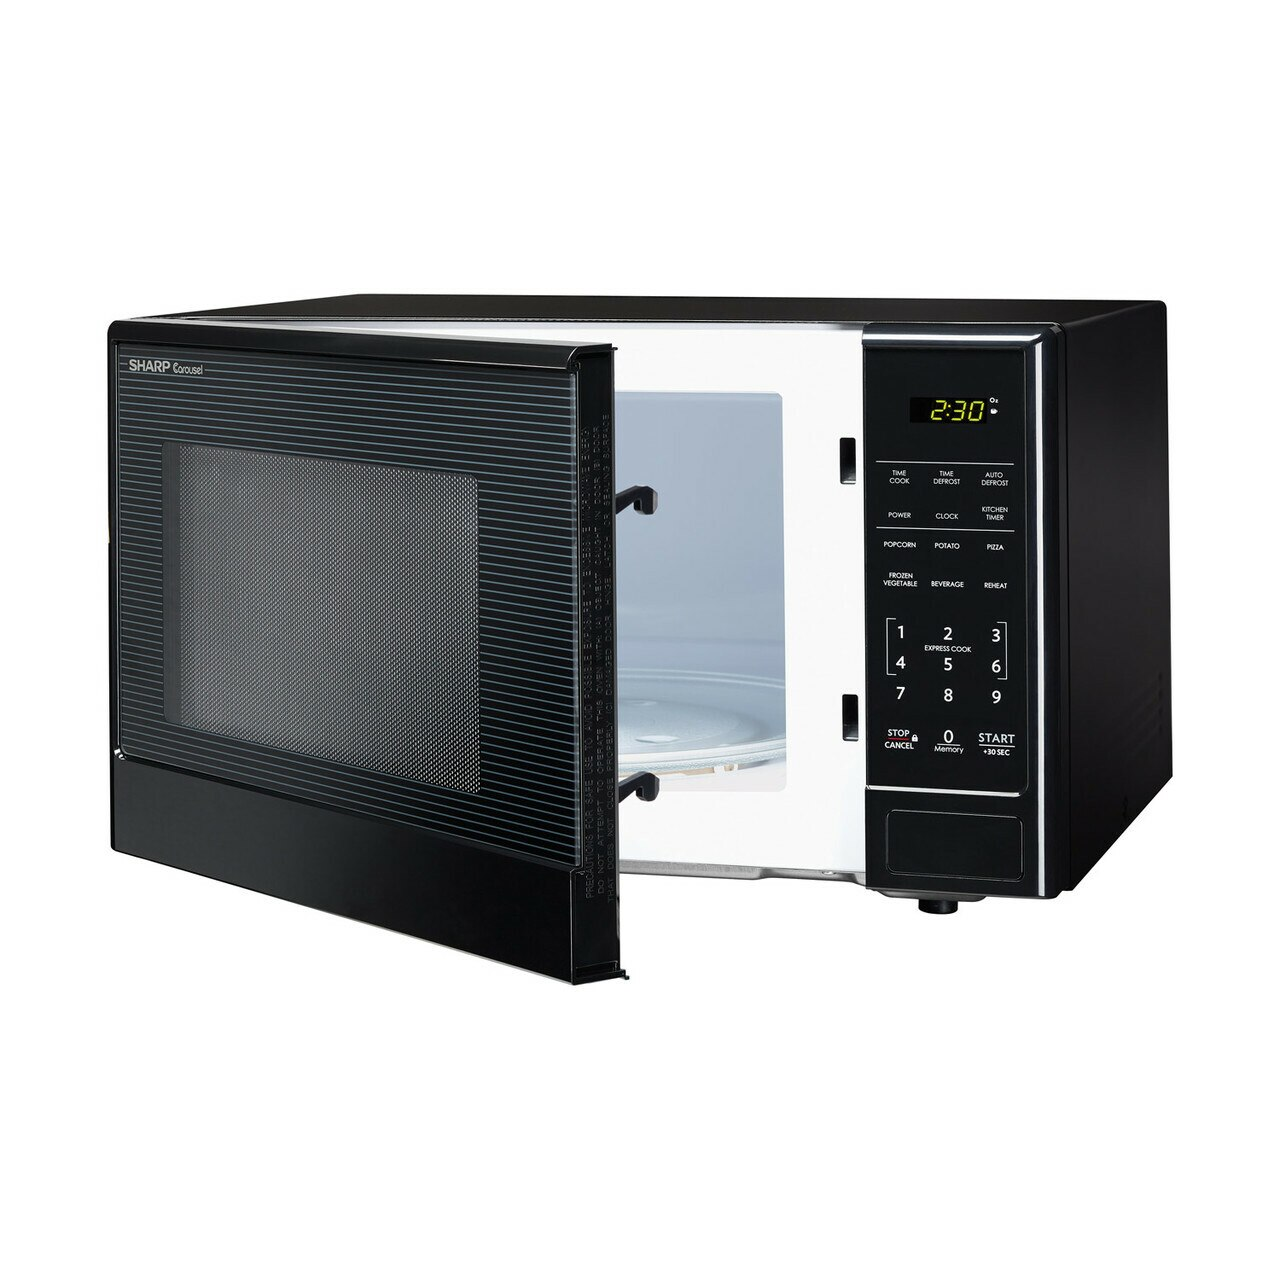 1.1 cu. ft. Sharp Black Carousel Countertop Microwave (SMC1111AB) – left angle view with door open